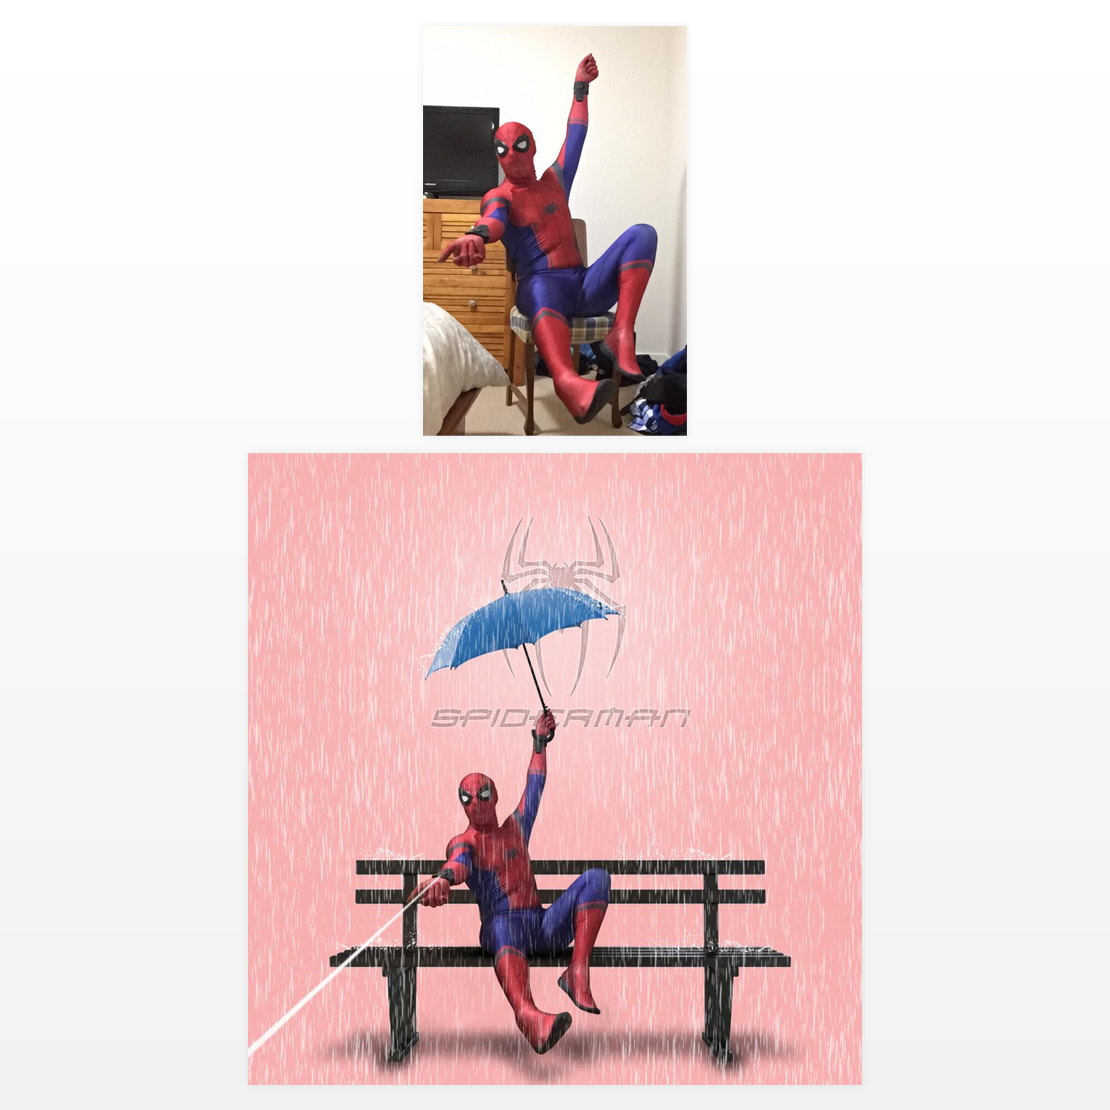 Manipulation-cosplay-spiderman-rainy